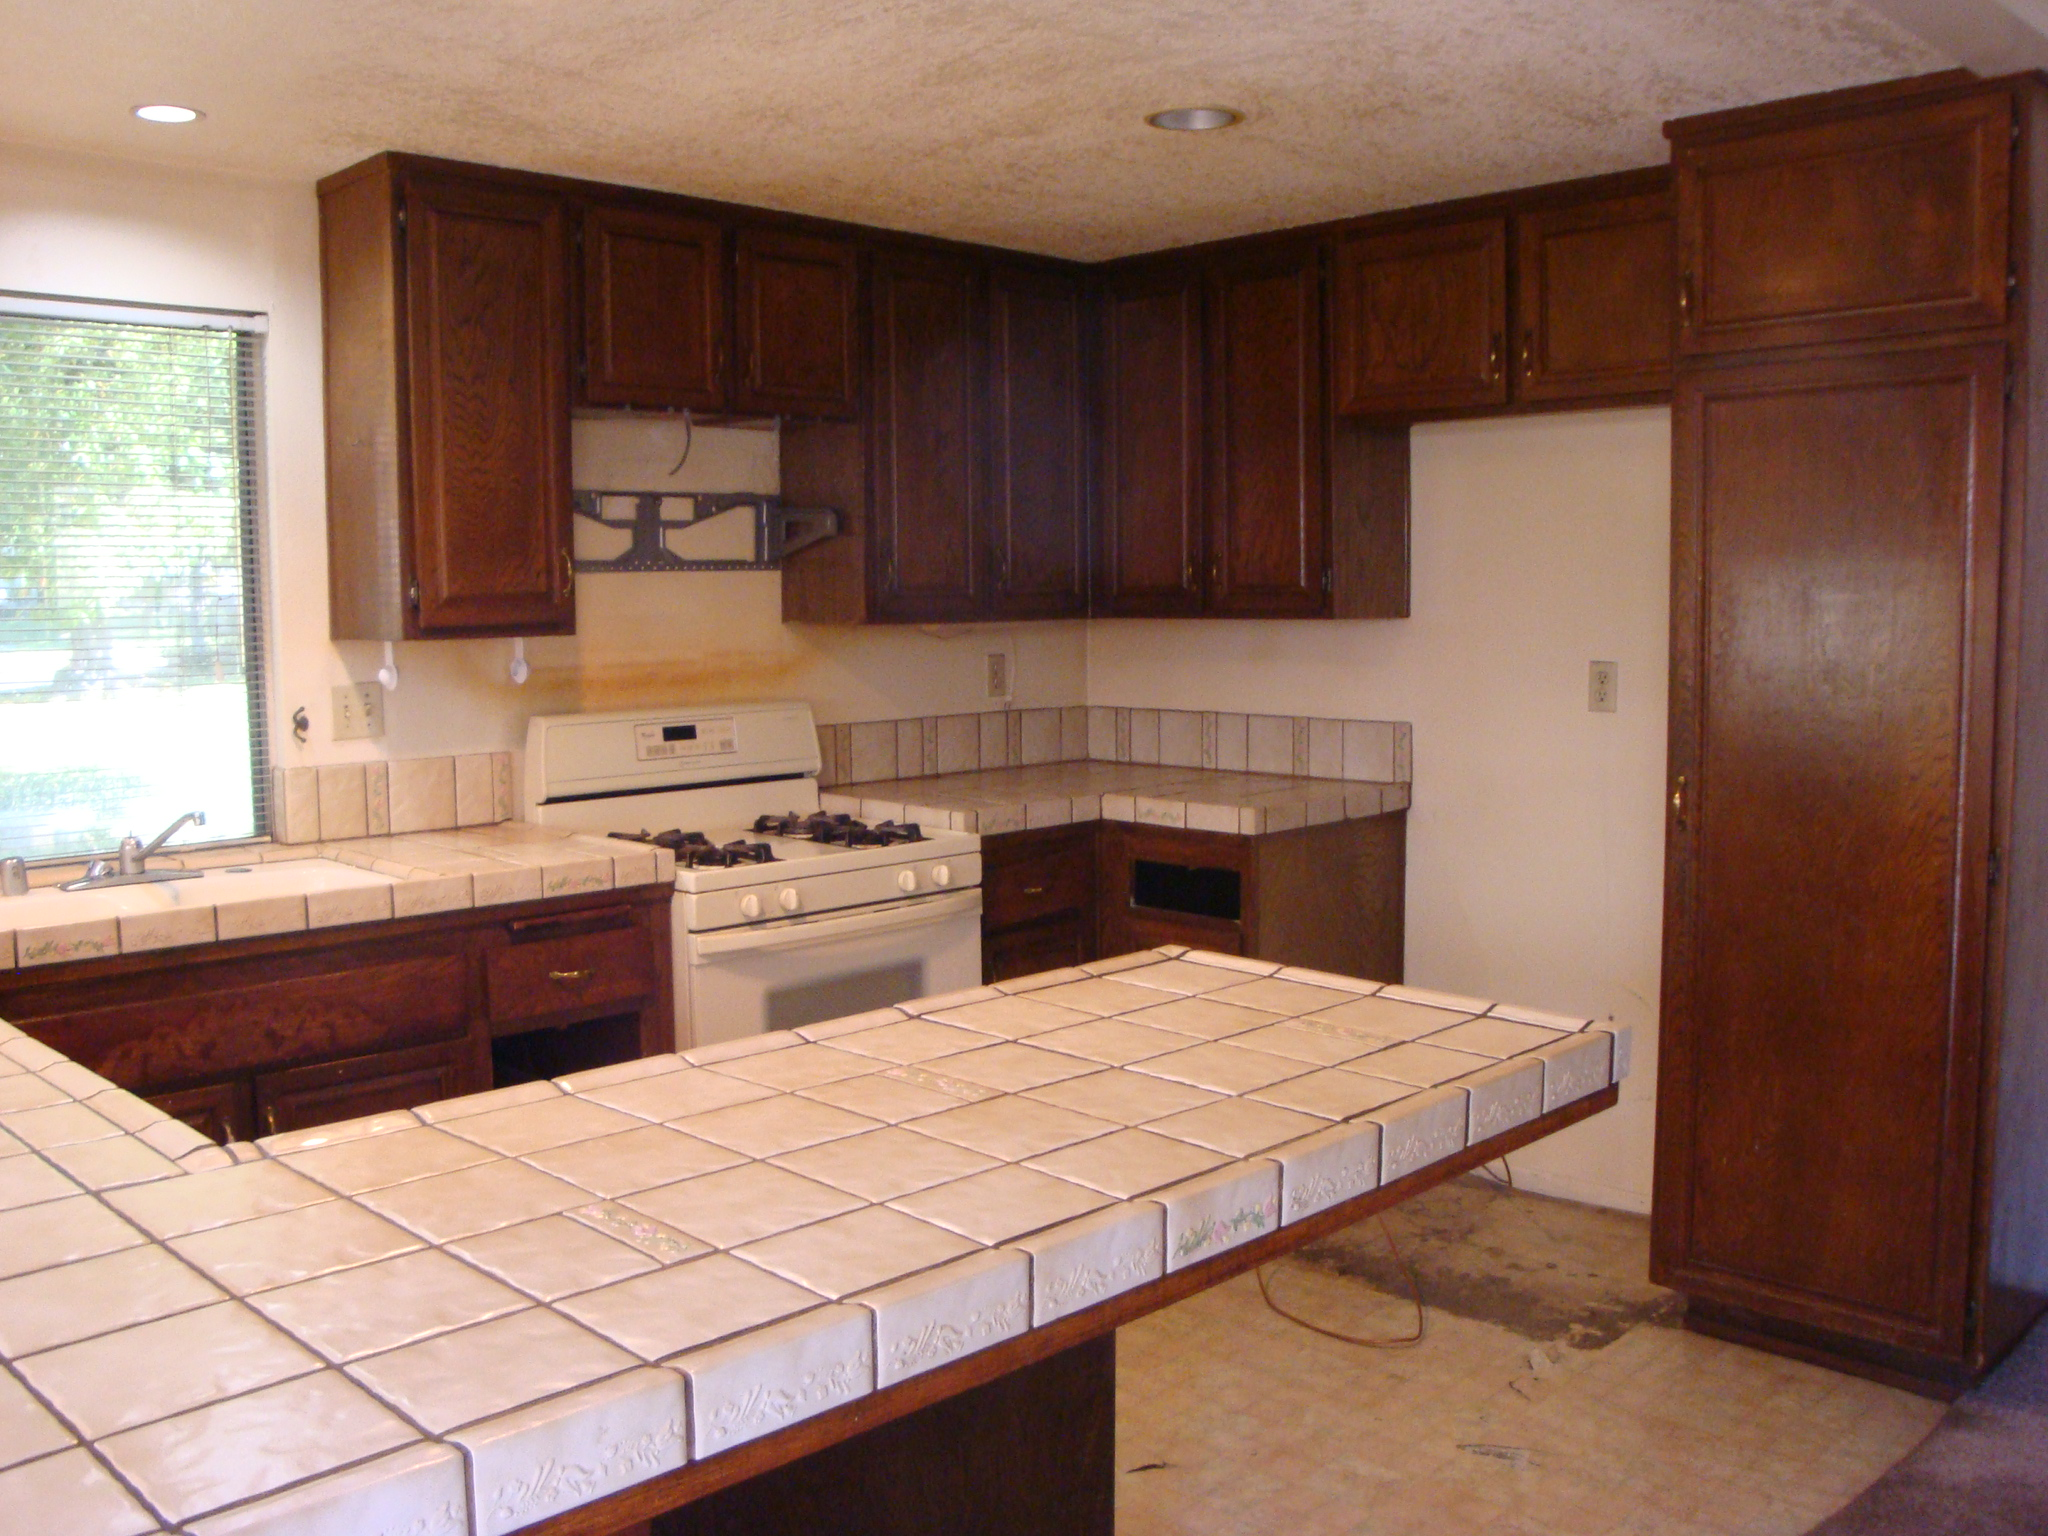 White Shaker Cabinets & Emerald Pearl Granite Counter Tops | Santa Clarita